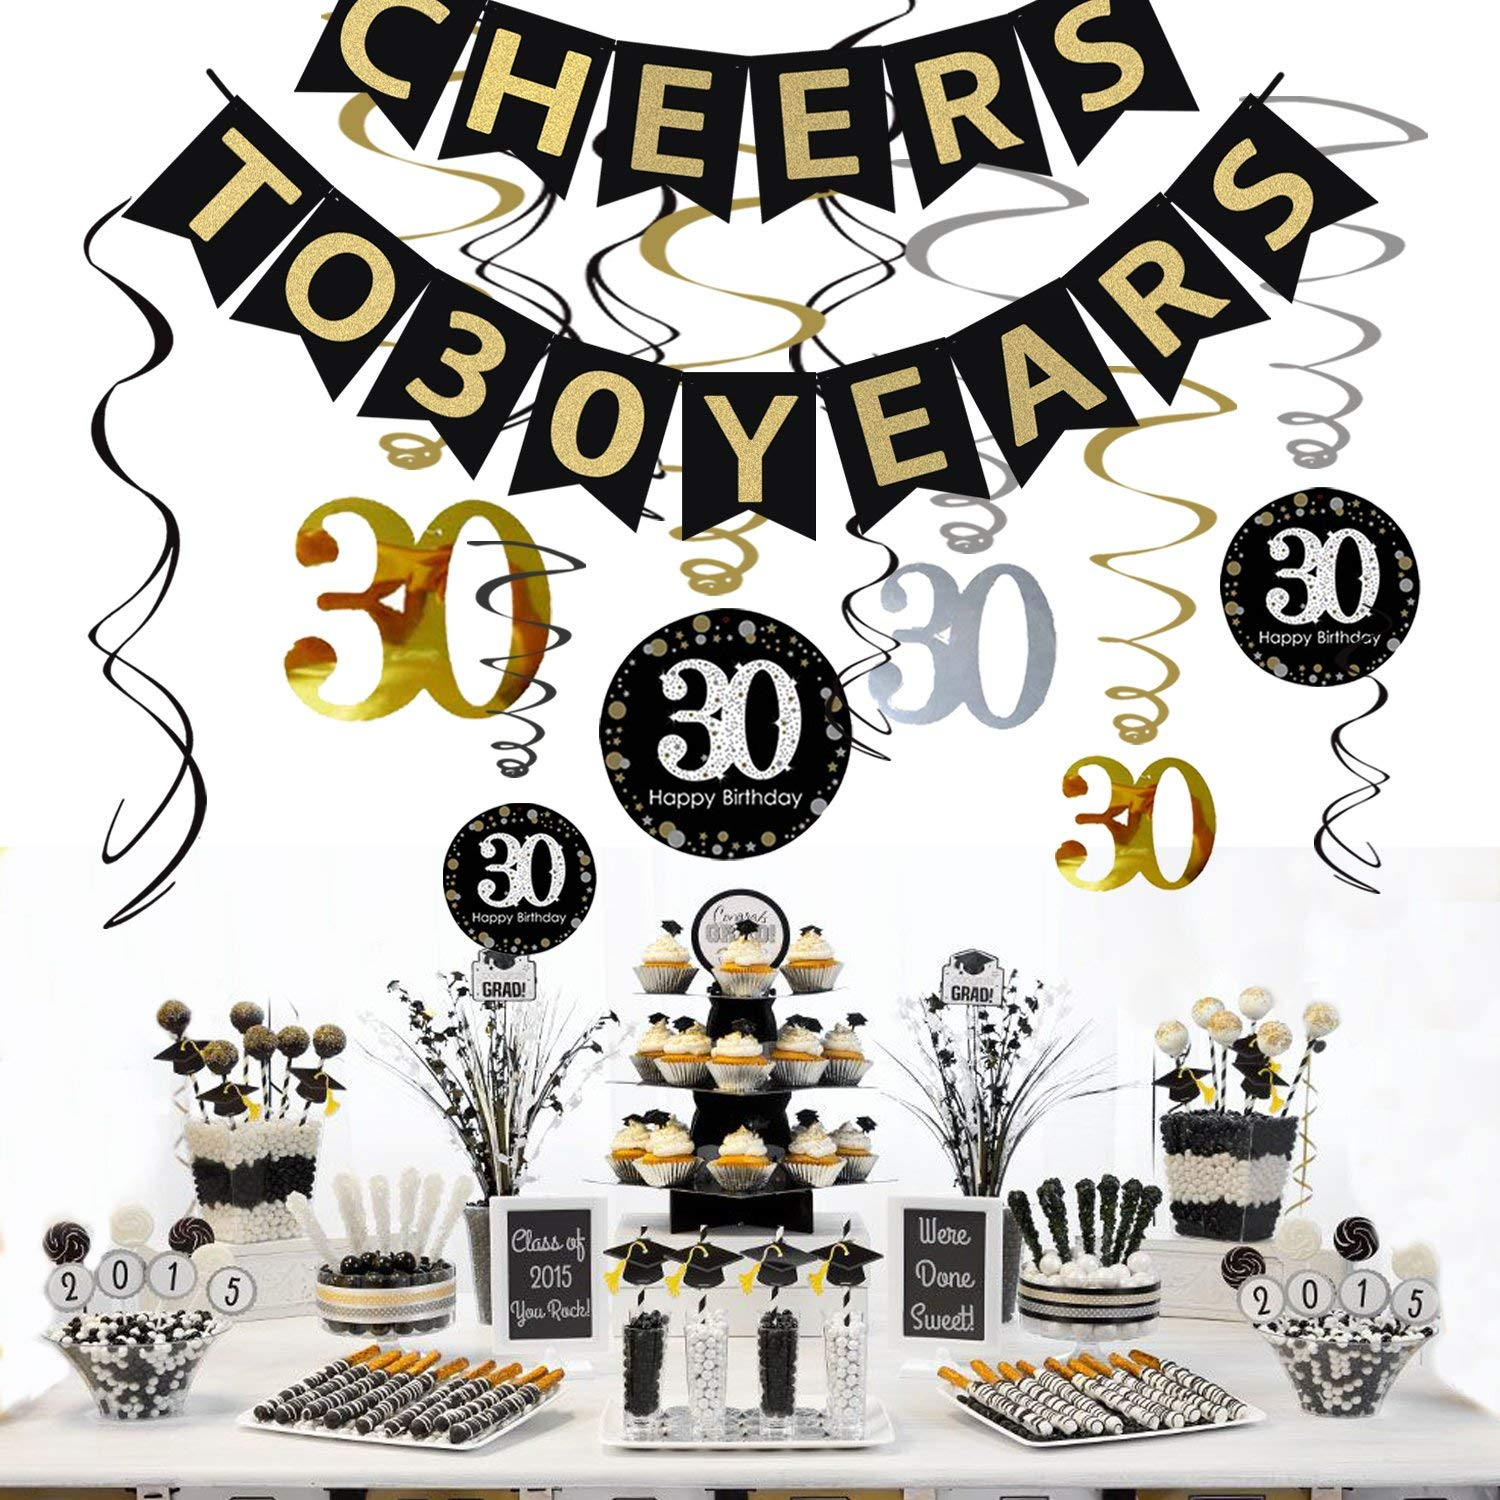 9pcs Tissue Paper Pom Poms for 30 Years Old Party Supplies black/&gold/&silver Happy Birthday Banner Balloons 30pcs Black Silver and Gold Latex Balloons Toupons 30th Birthday Party Decorations Kit